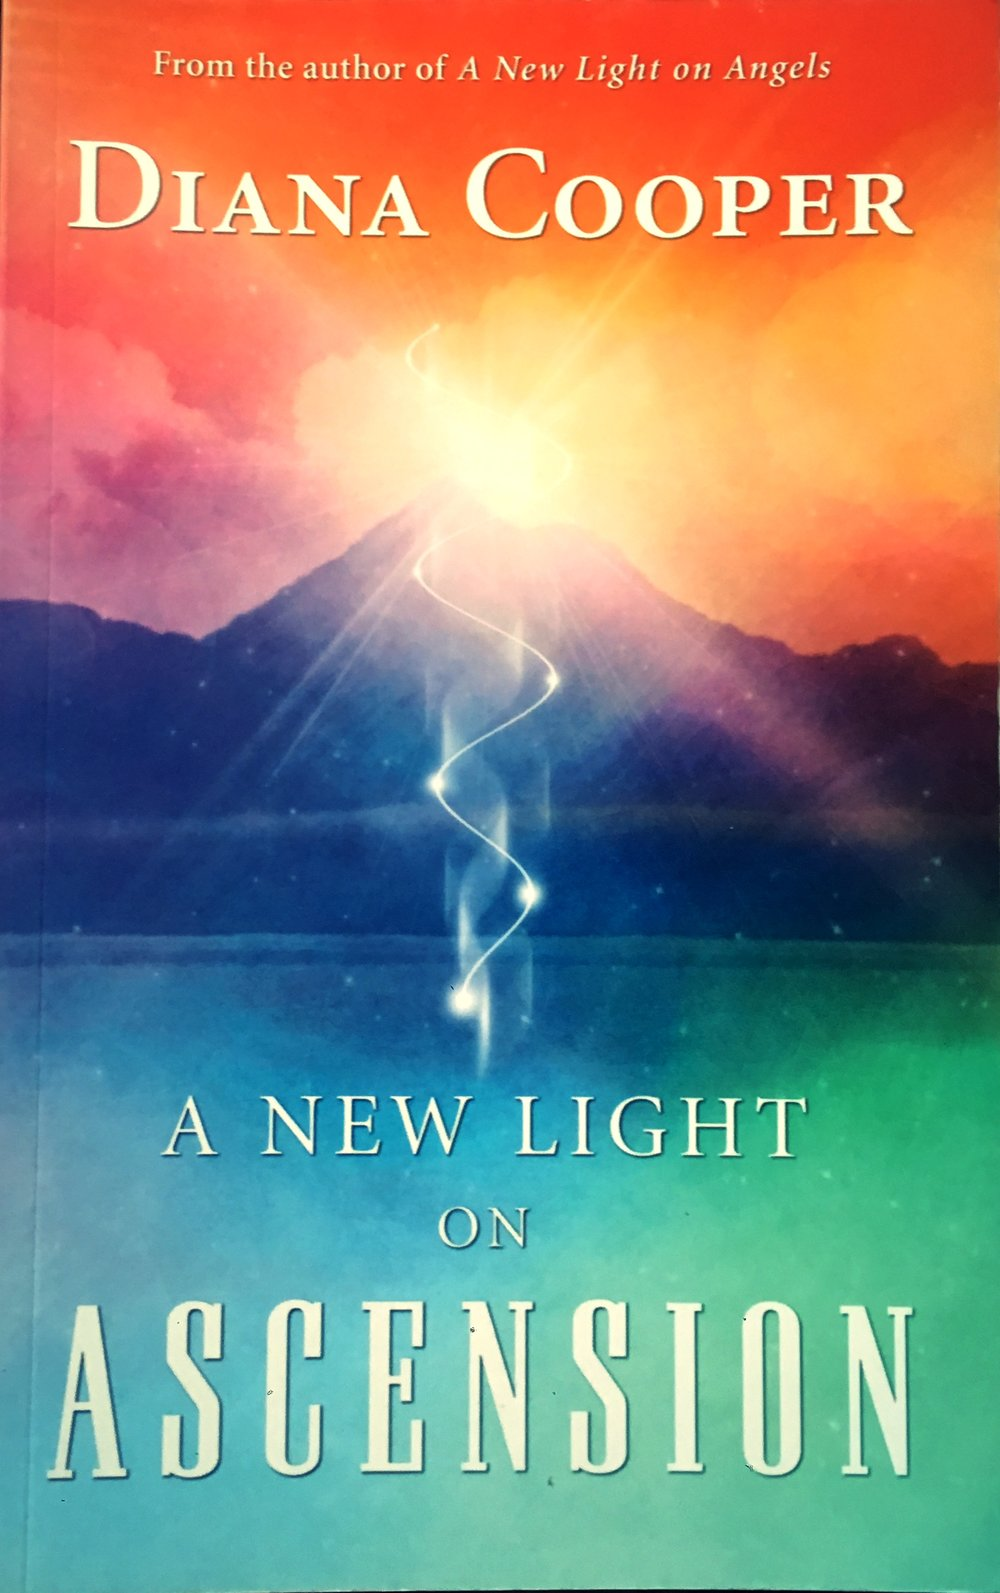 A new light on Ascension BOOK.jpg